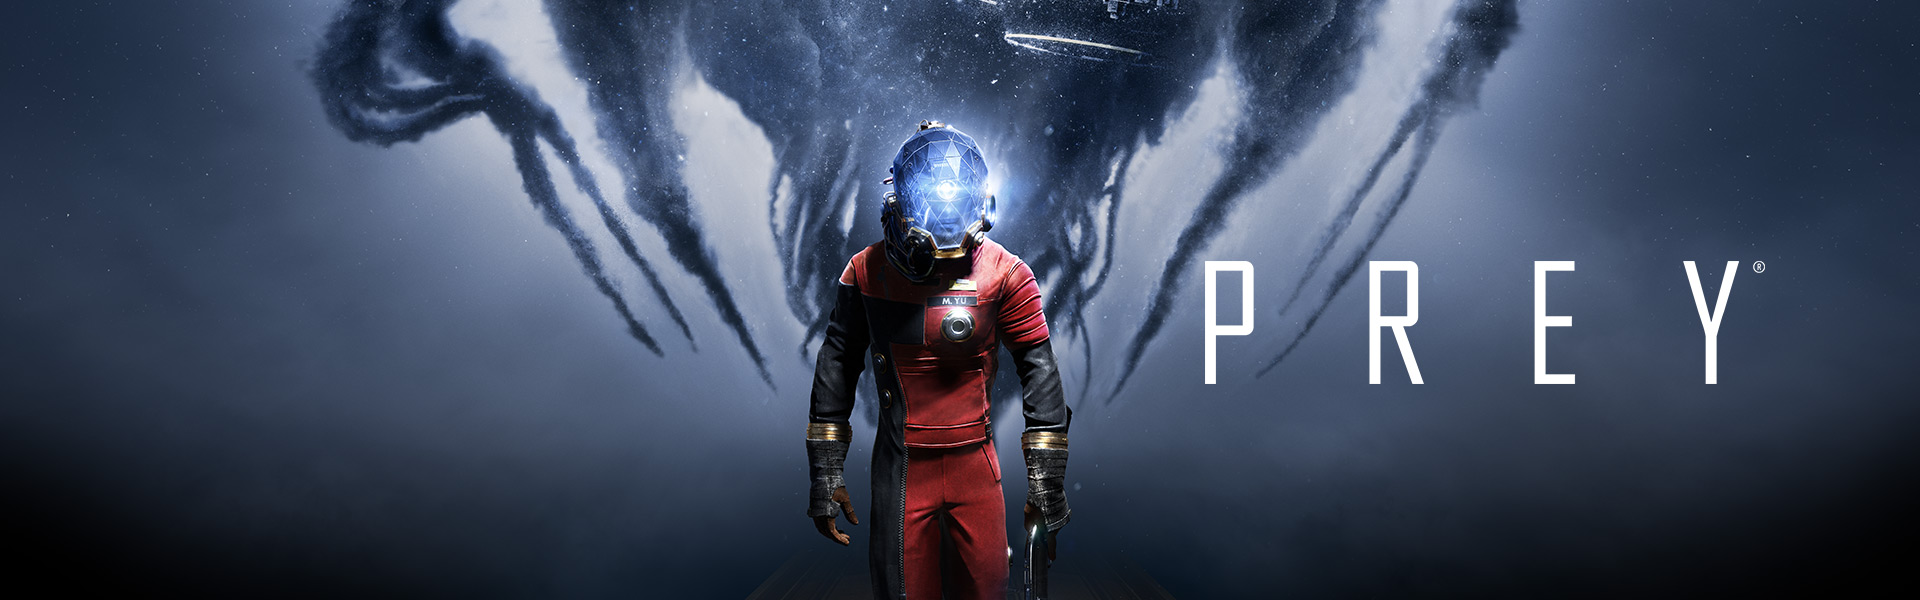 Prey, Morgan Yu holds a shotgun while space appears behind in smoke